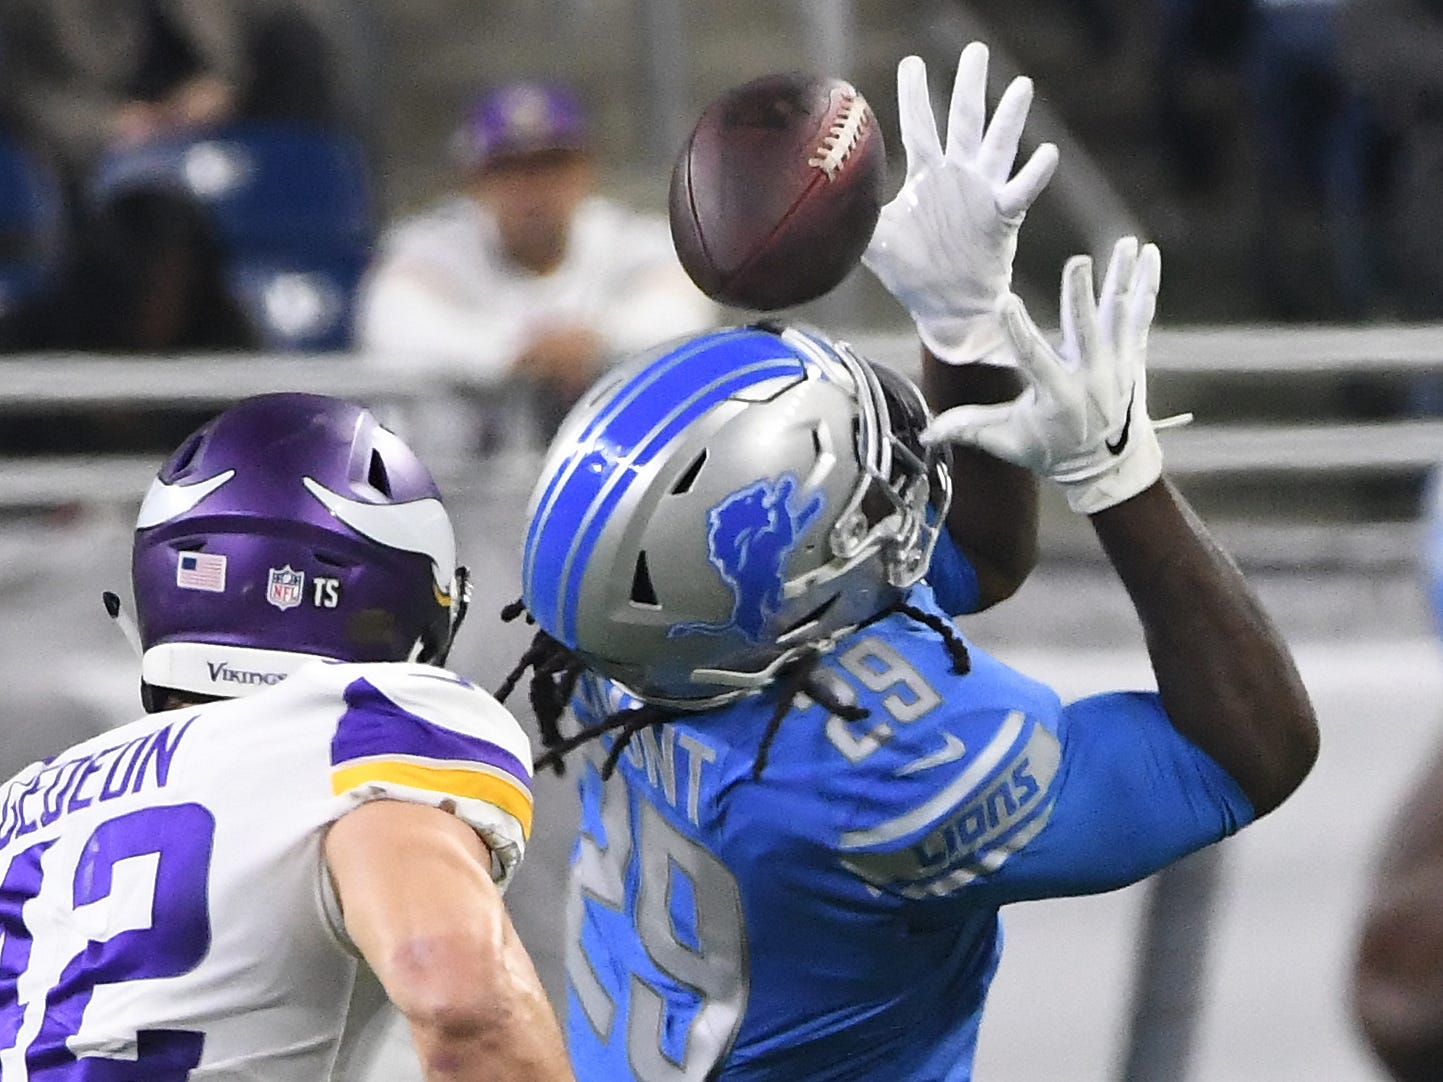 A pass to Lions running back LeGarrette Blount bounces off is helmet and goes incomplete with Vikings' Ben Gedeon defending in the first quarter.